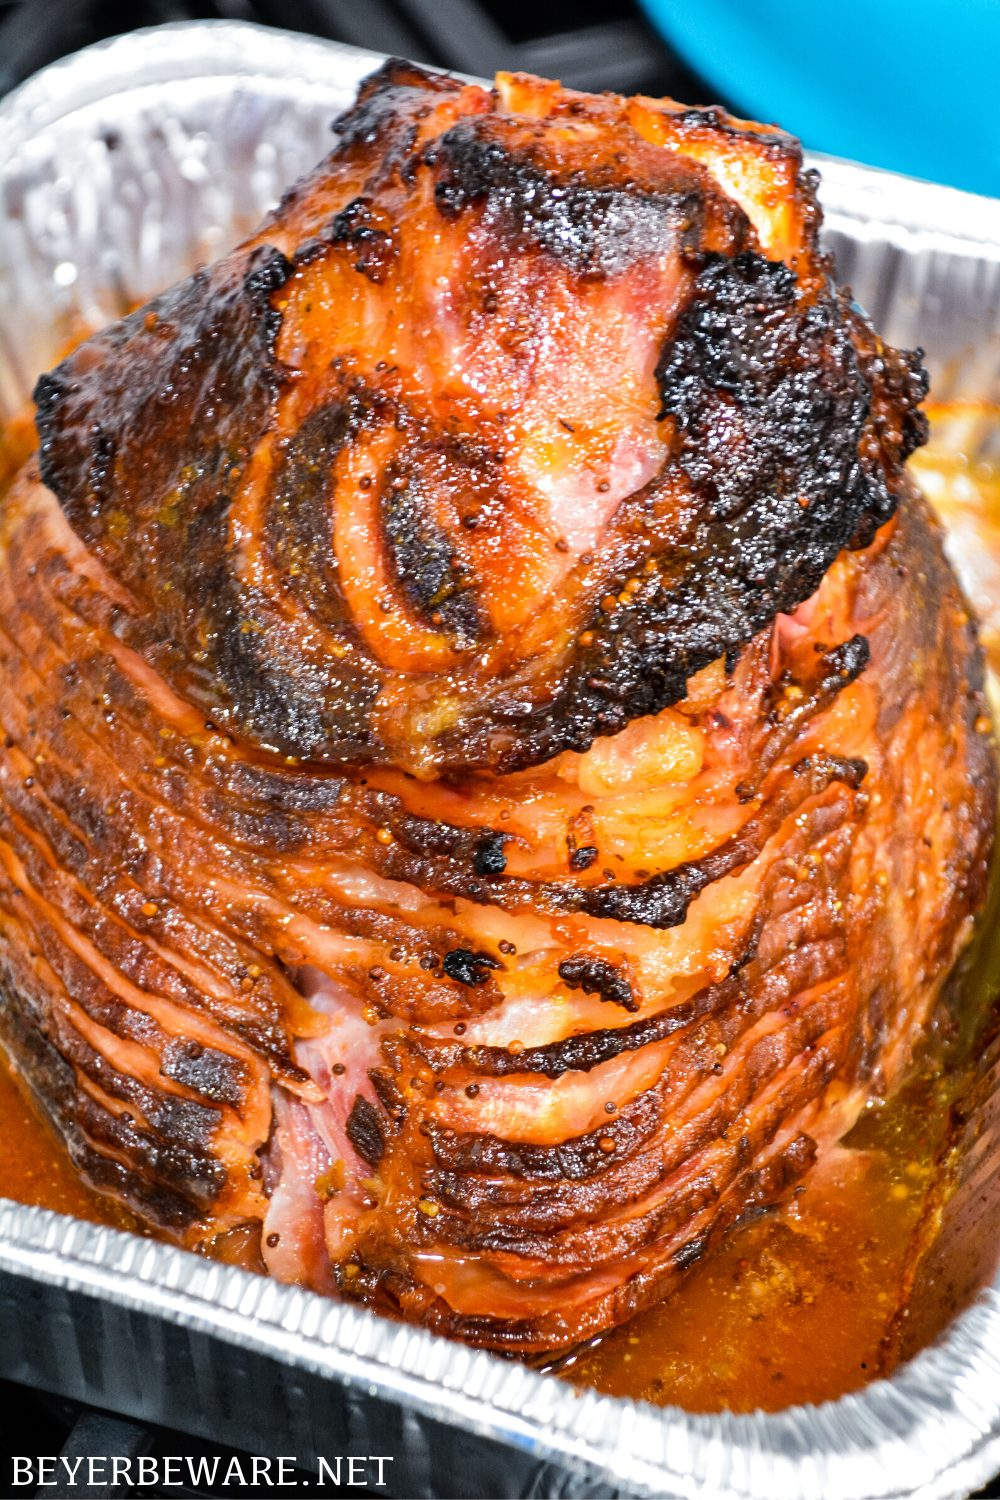 Apricot bourbon-glazed ham on the grill is a sweet and salty combination of flavors with apricot jam, mustard, maple syrup, lemon juice, and bourbon and then smoke drenched on the Big Green Egg.